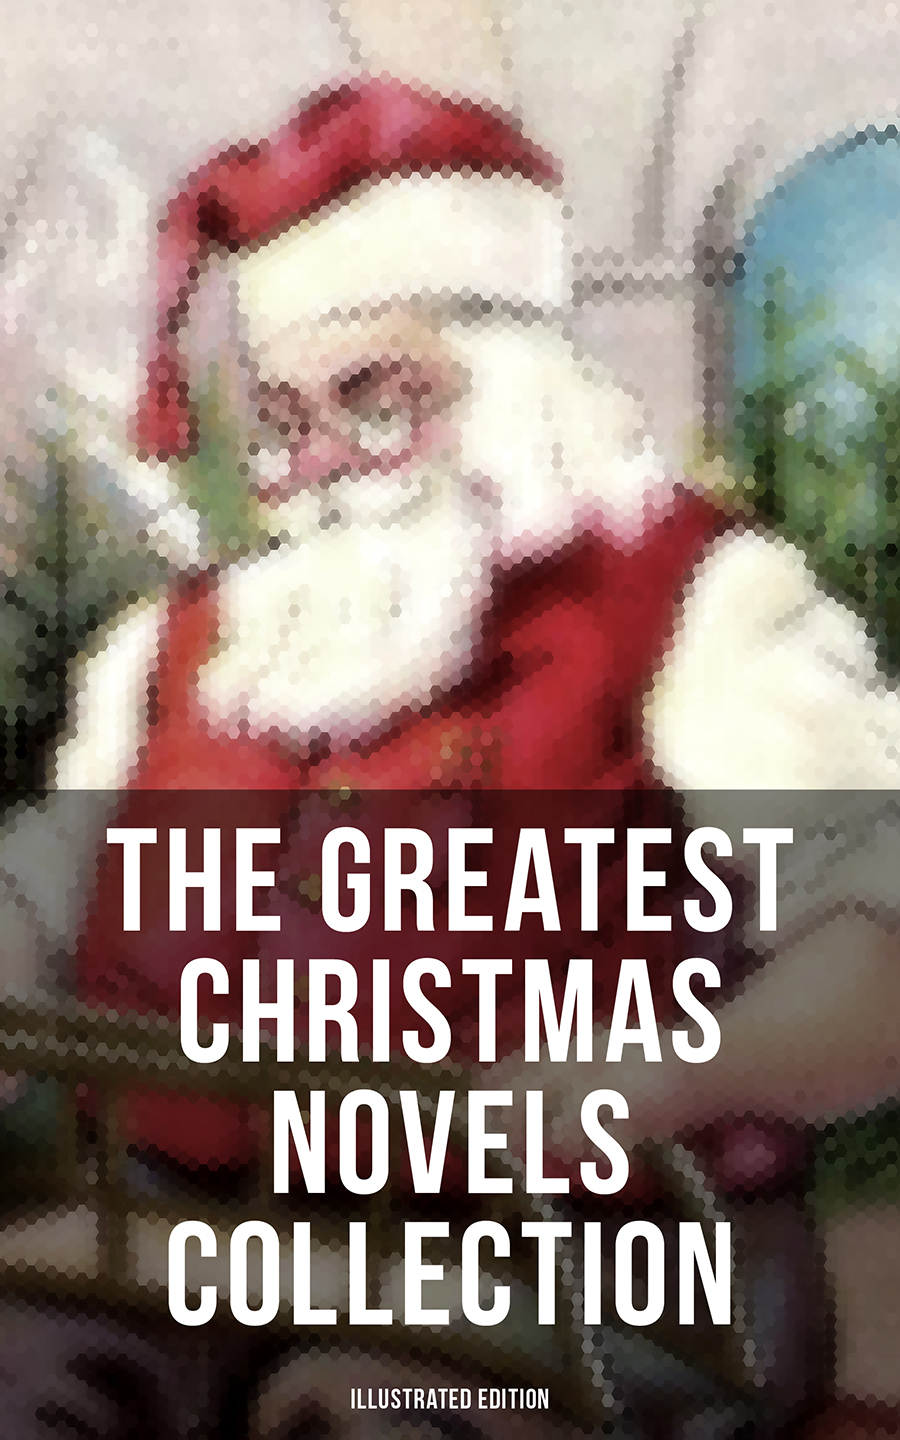 the greatest christmas novels collection illustrated edition